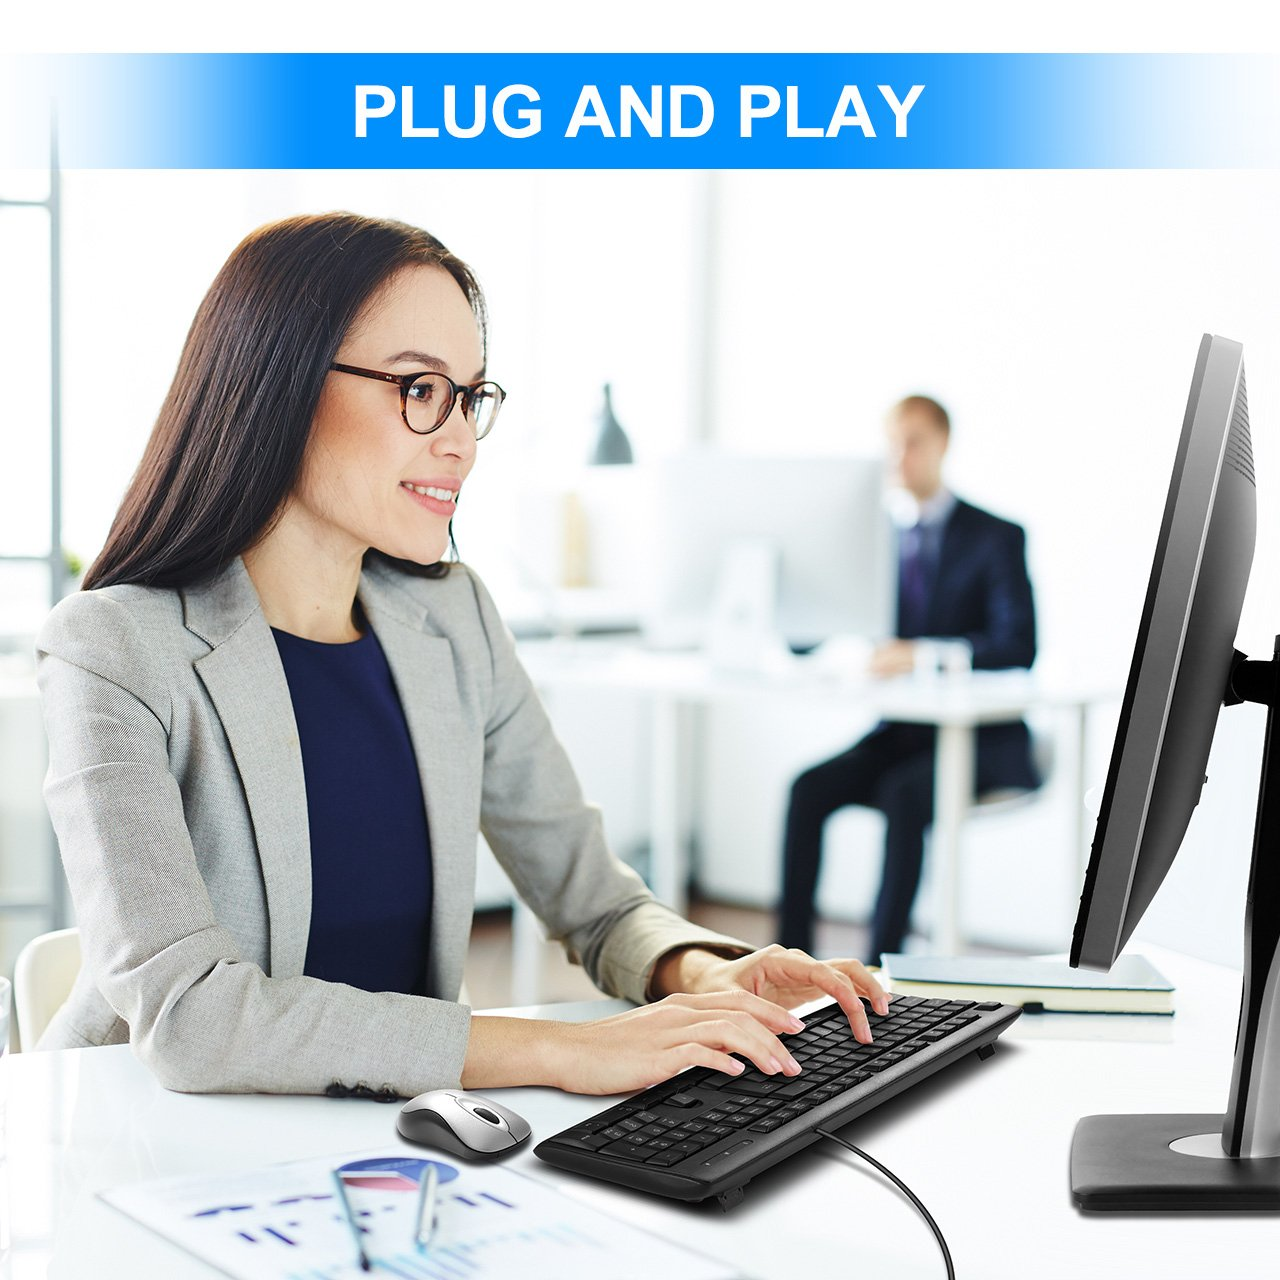 VicTsing Spill-Resistant Wired Keyboard, Computer USB Keyboard with 5 Feet USB Cable and Foldable Stands, Support Windows 10/8/7/Vista/XP, Mac, Linux, Black by VicTsing (Image #6)